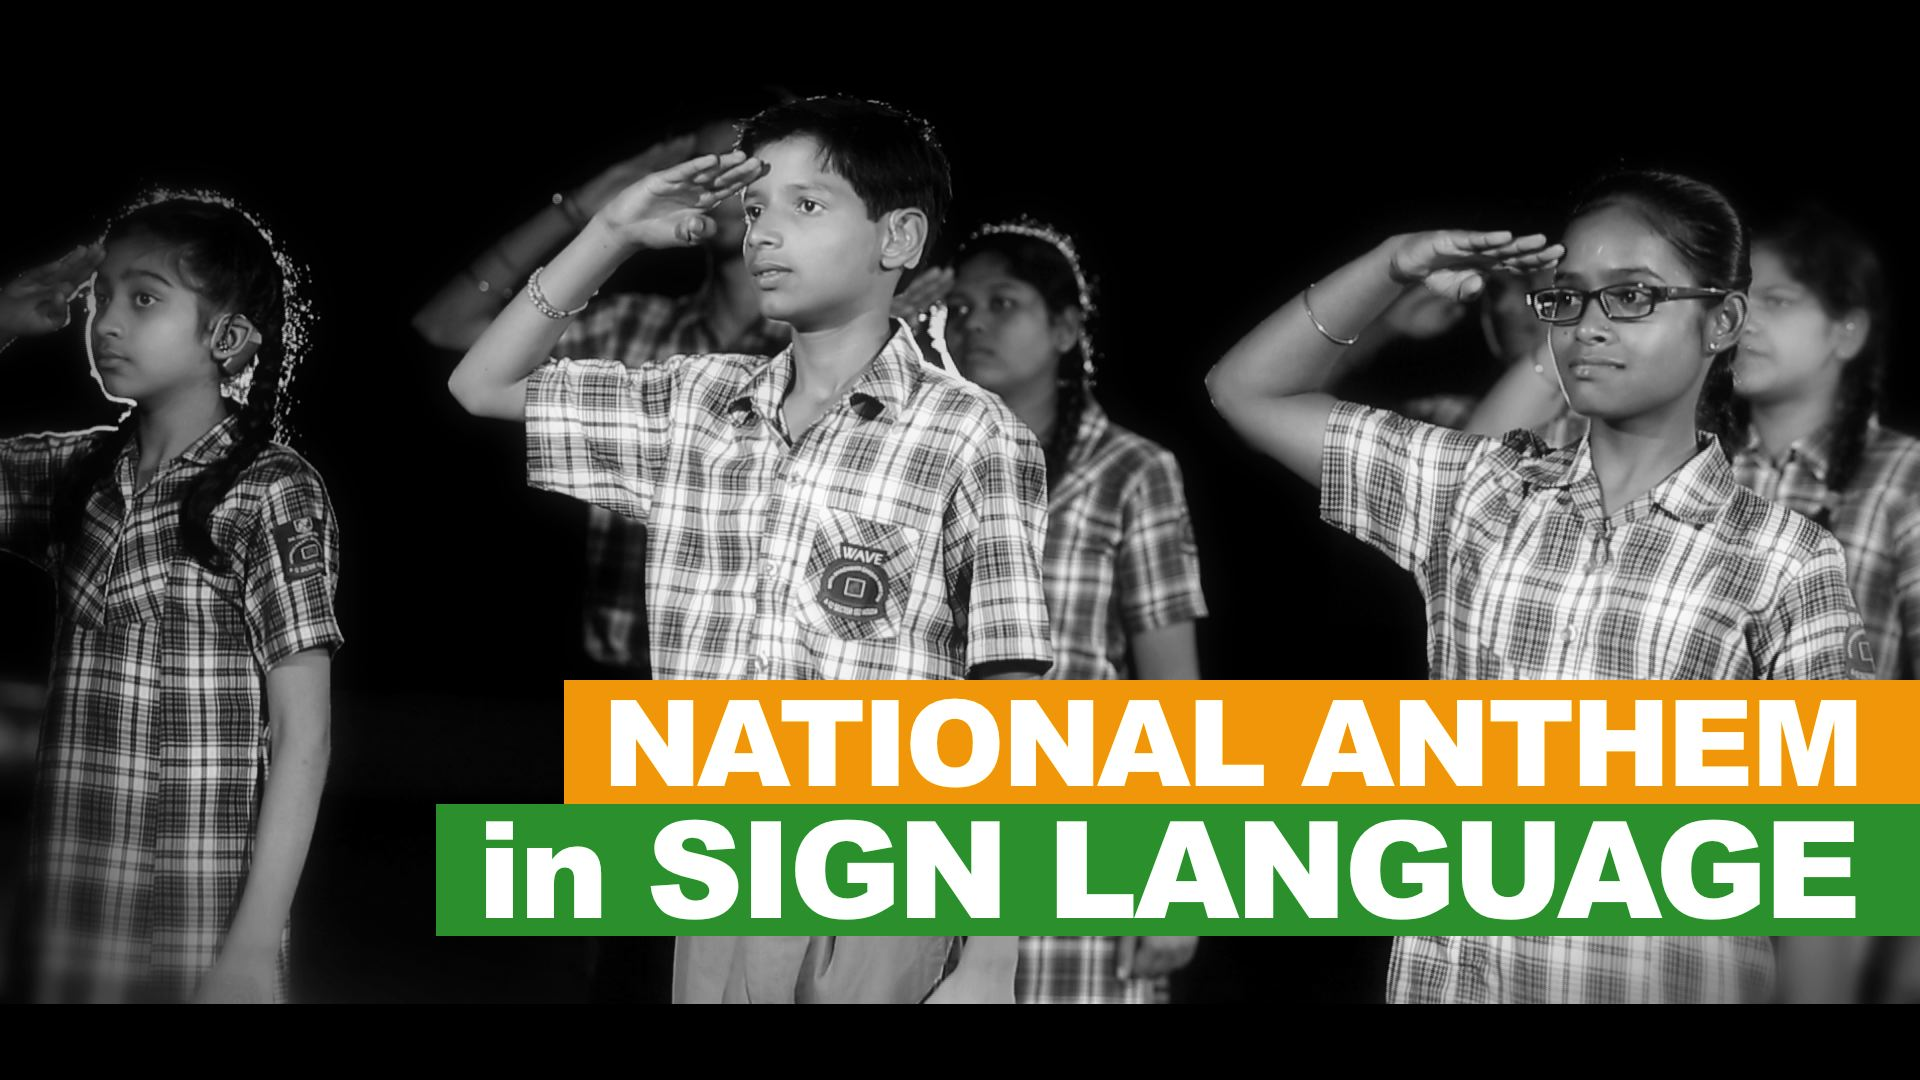 National Anthem in Sign Language